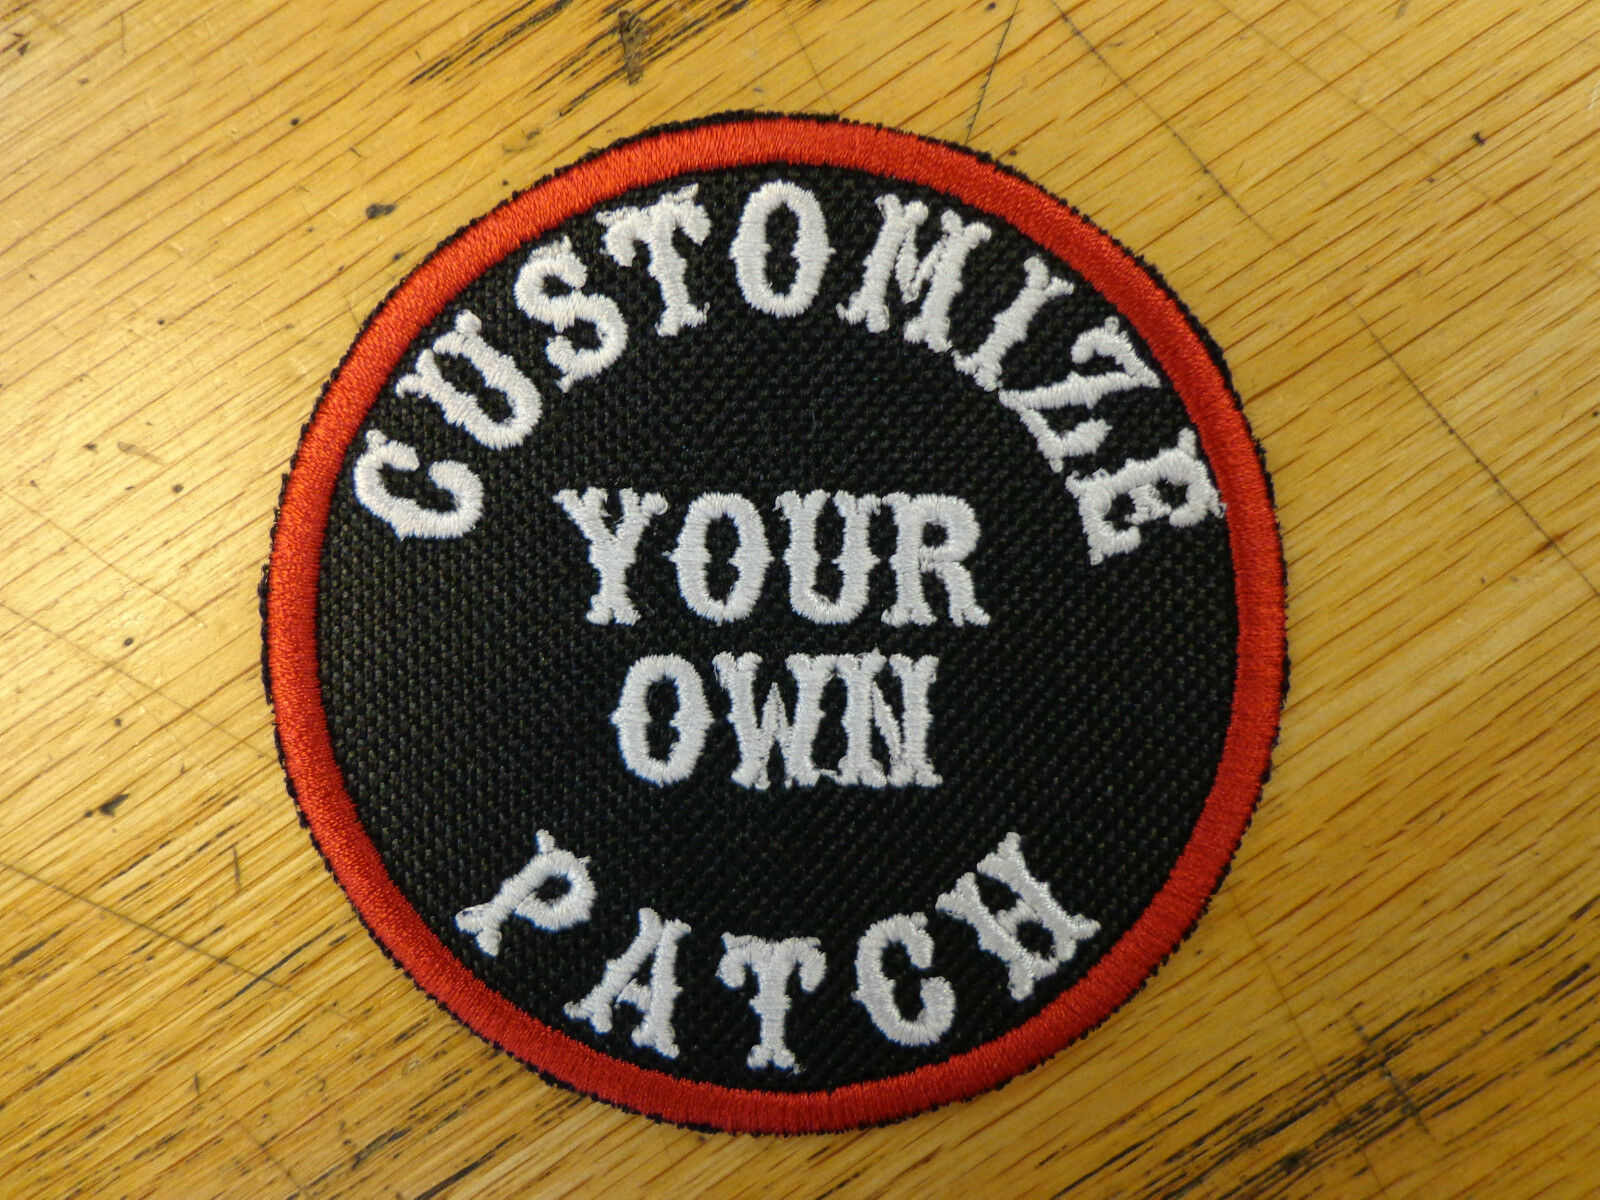 CUSTOM EMBROIDERED ROUND PATCH 3 INCH NAME SAYING MADE IN USA